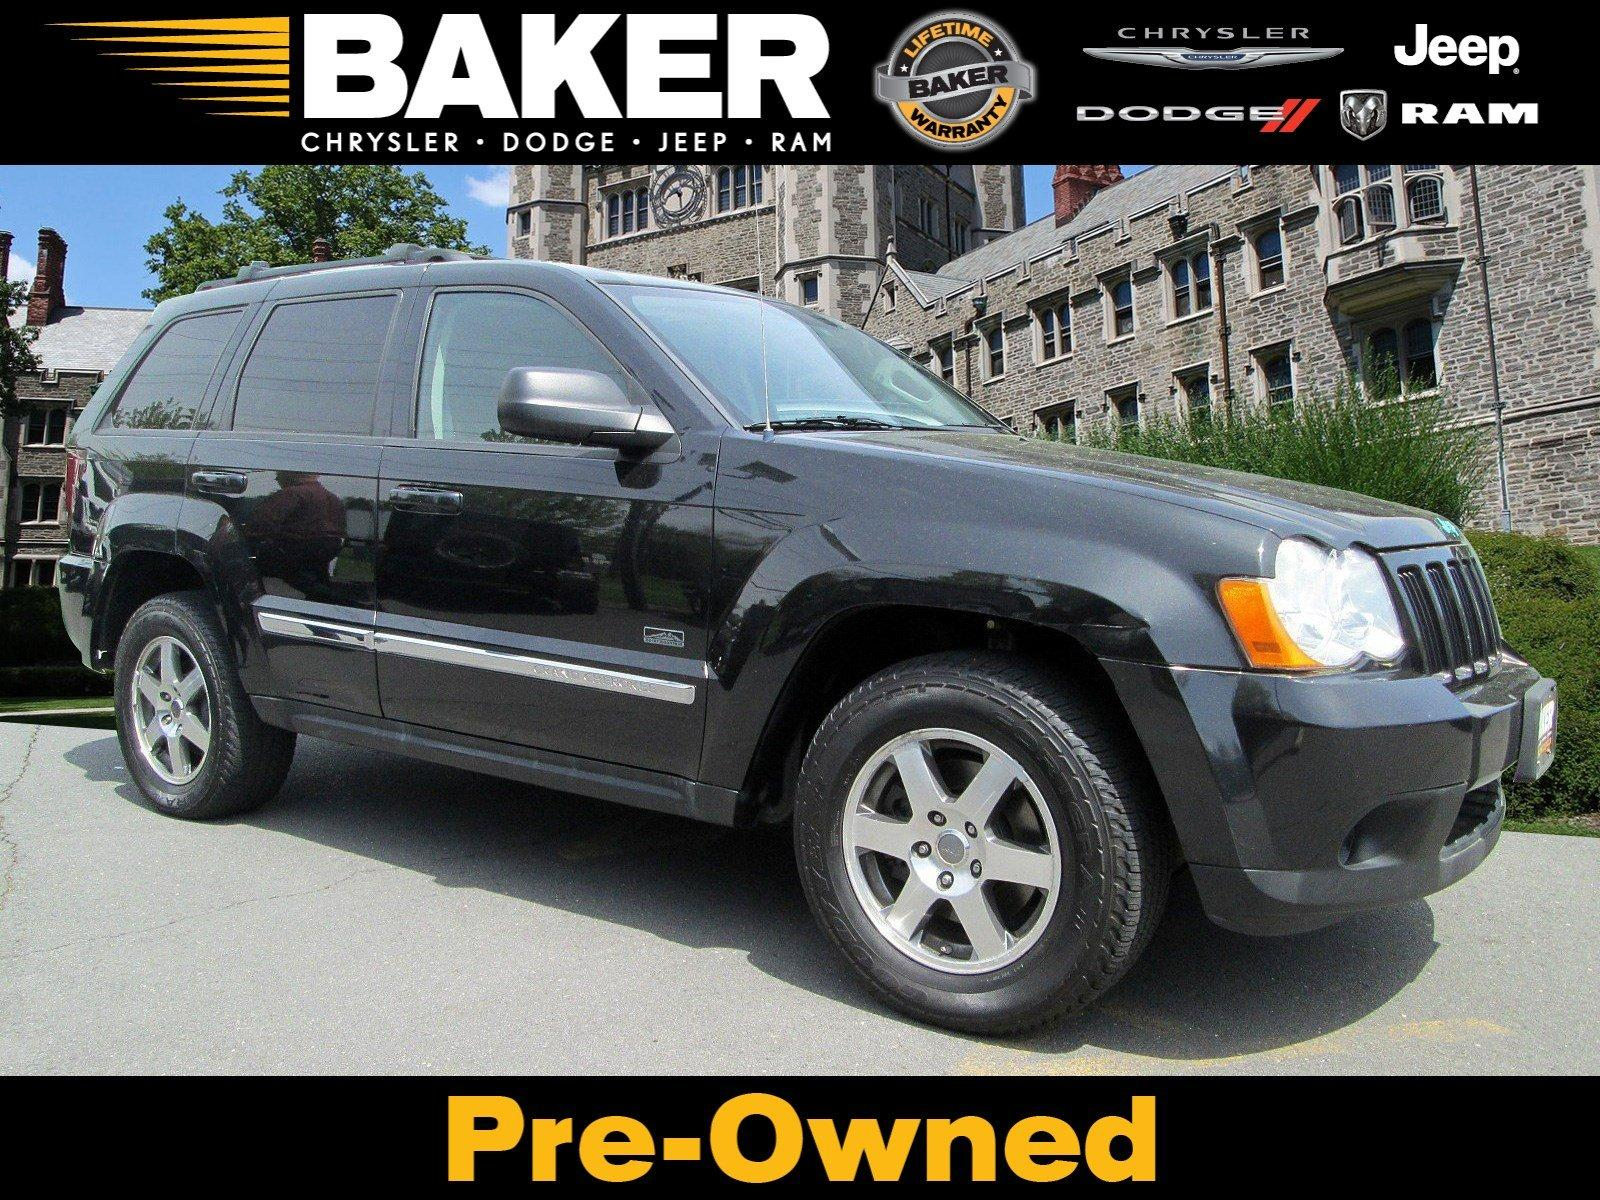 Used 2009 Jeep Grand Cherokee Rocky Mountain for sale Sold at Victory Lotus in Princeton NJ 08540 1